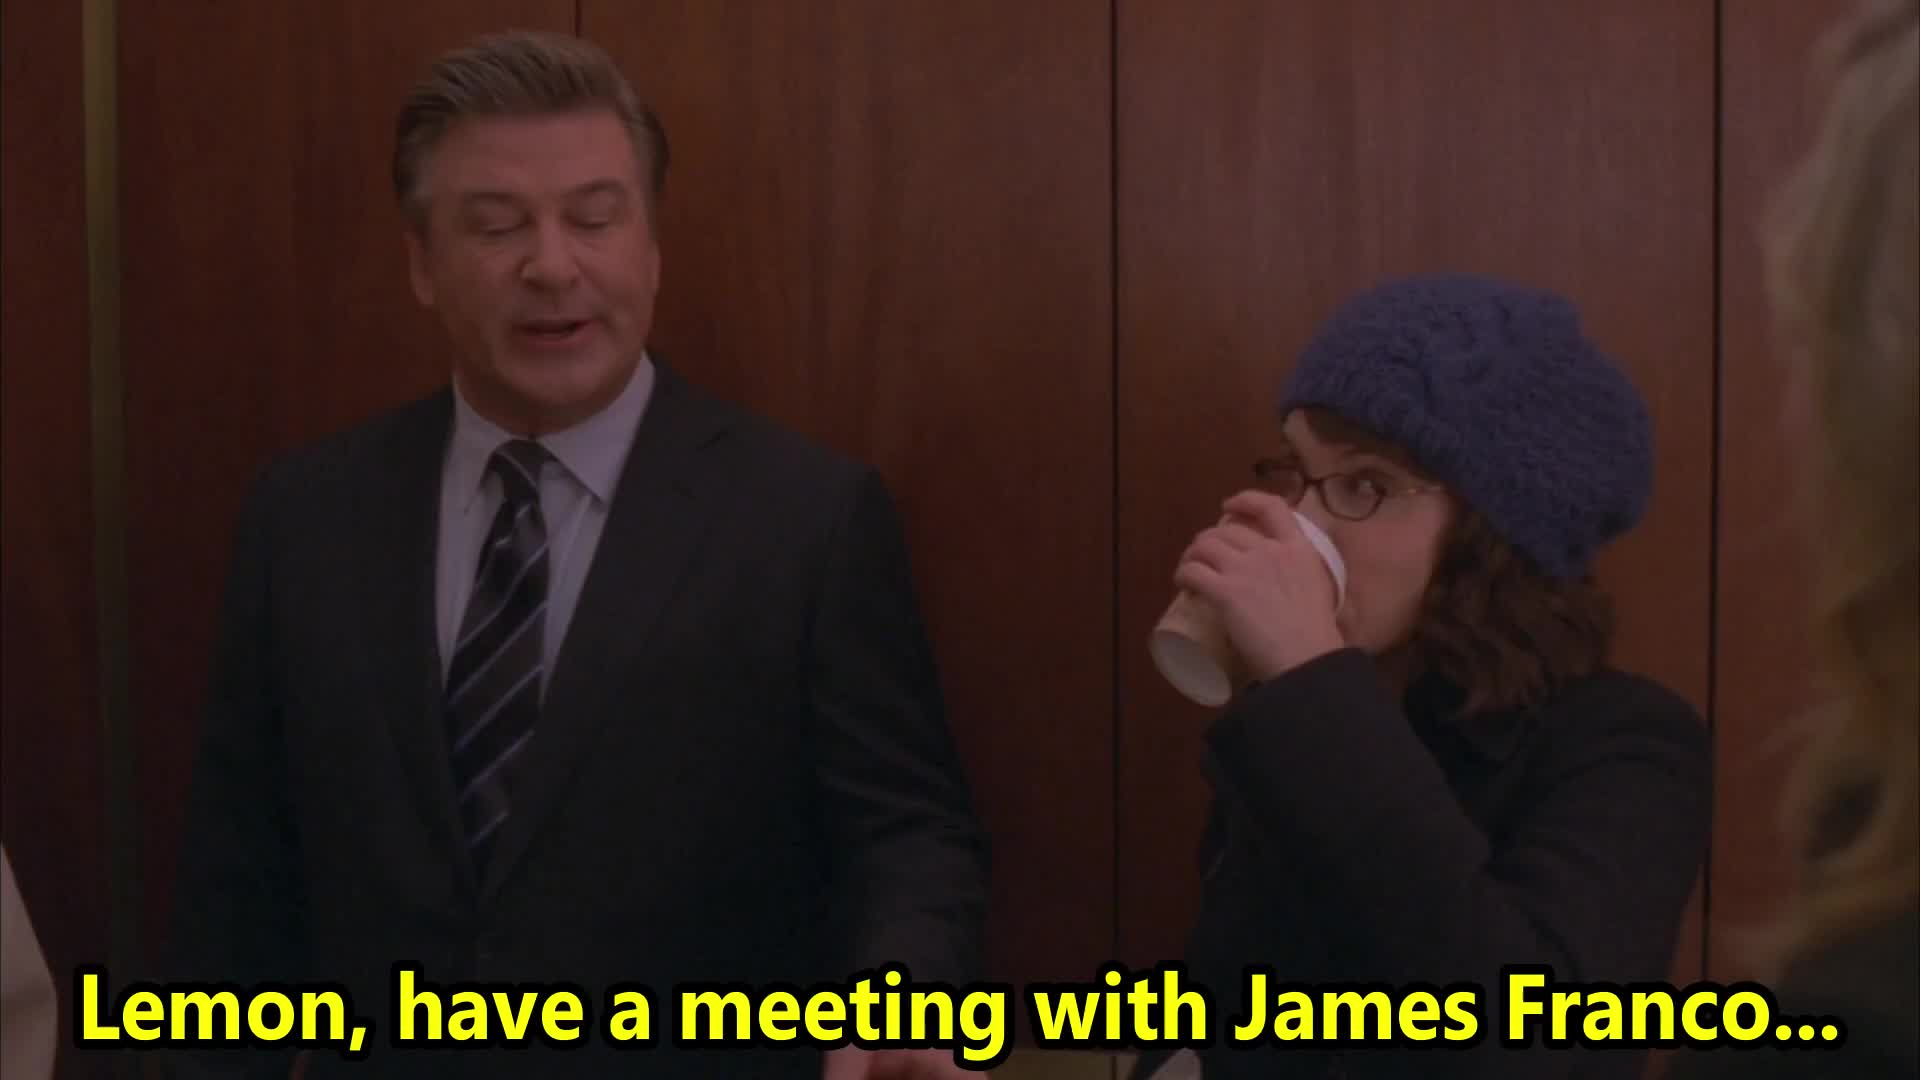 30 rock, alec, baldwin, donaghy, fey, jack, jane, jenna, klaus and greta, krakowski, late, lemon, liz, manager, maroney, s04e09, screw, tina, too, TOO LATE! GIFs